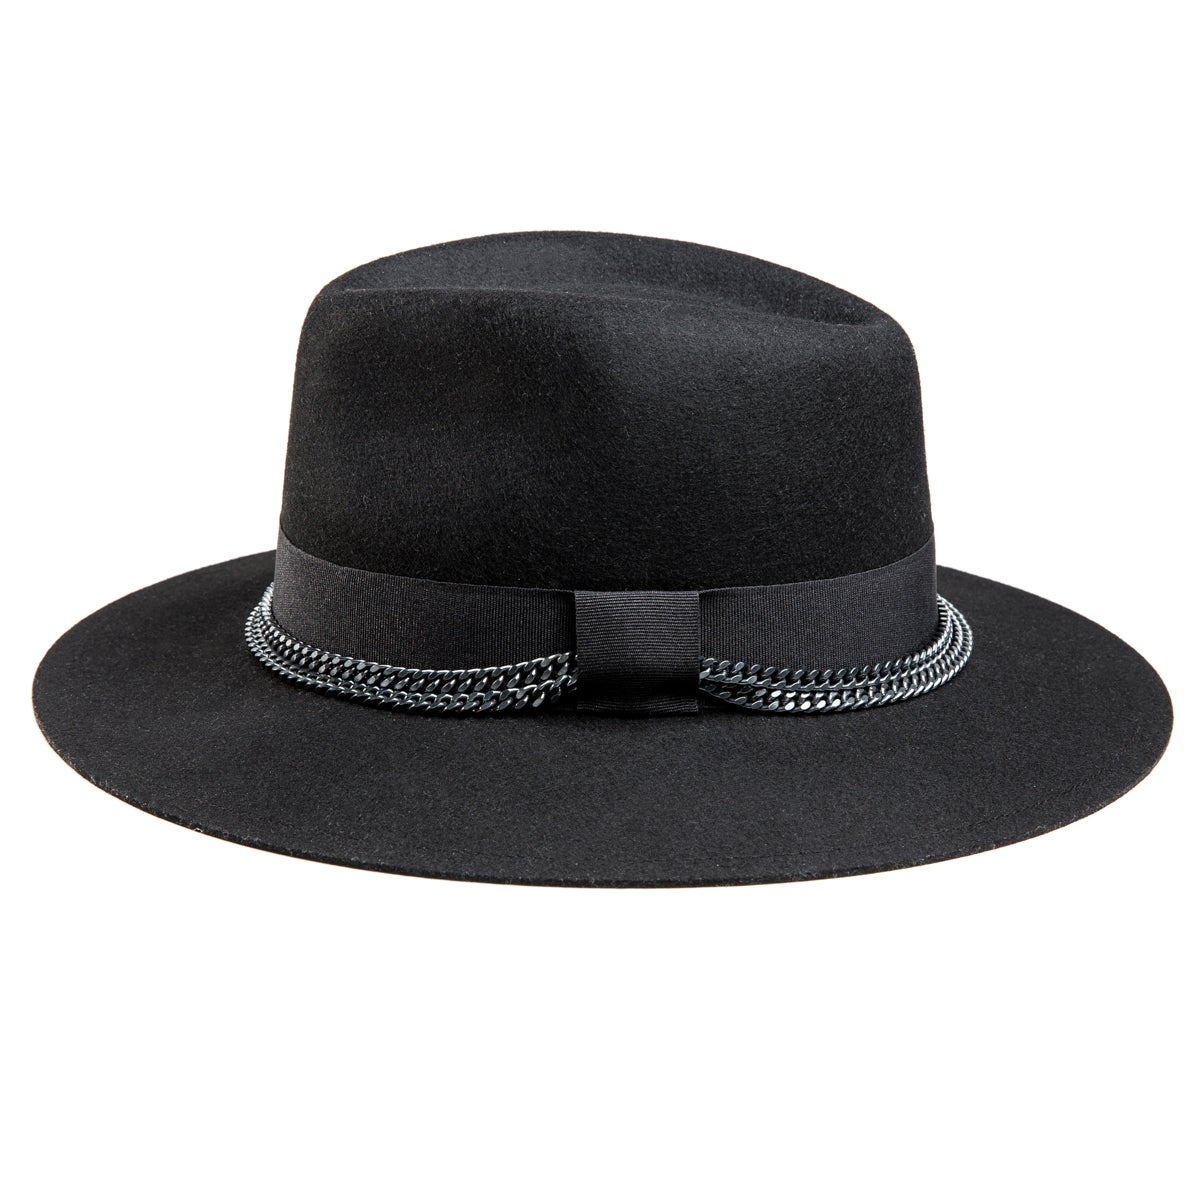 BLACK or GREY FEDORA JALISCO